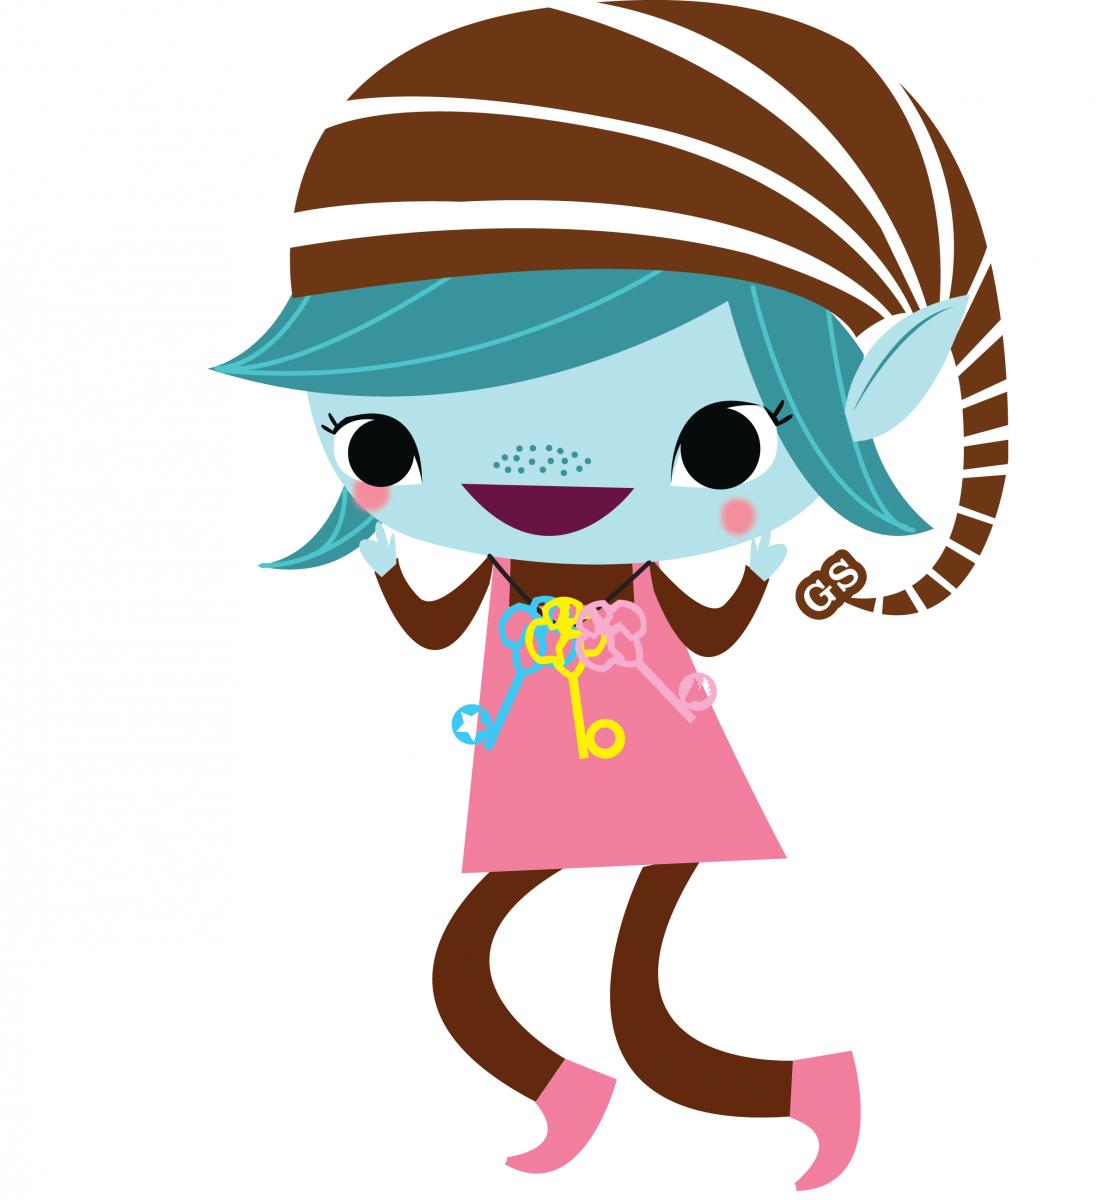 Elf clipart girly Pinterest of start Story scout